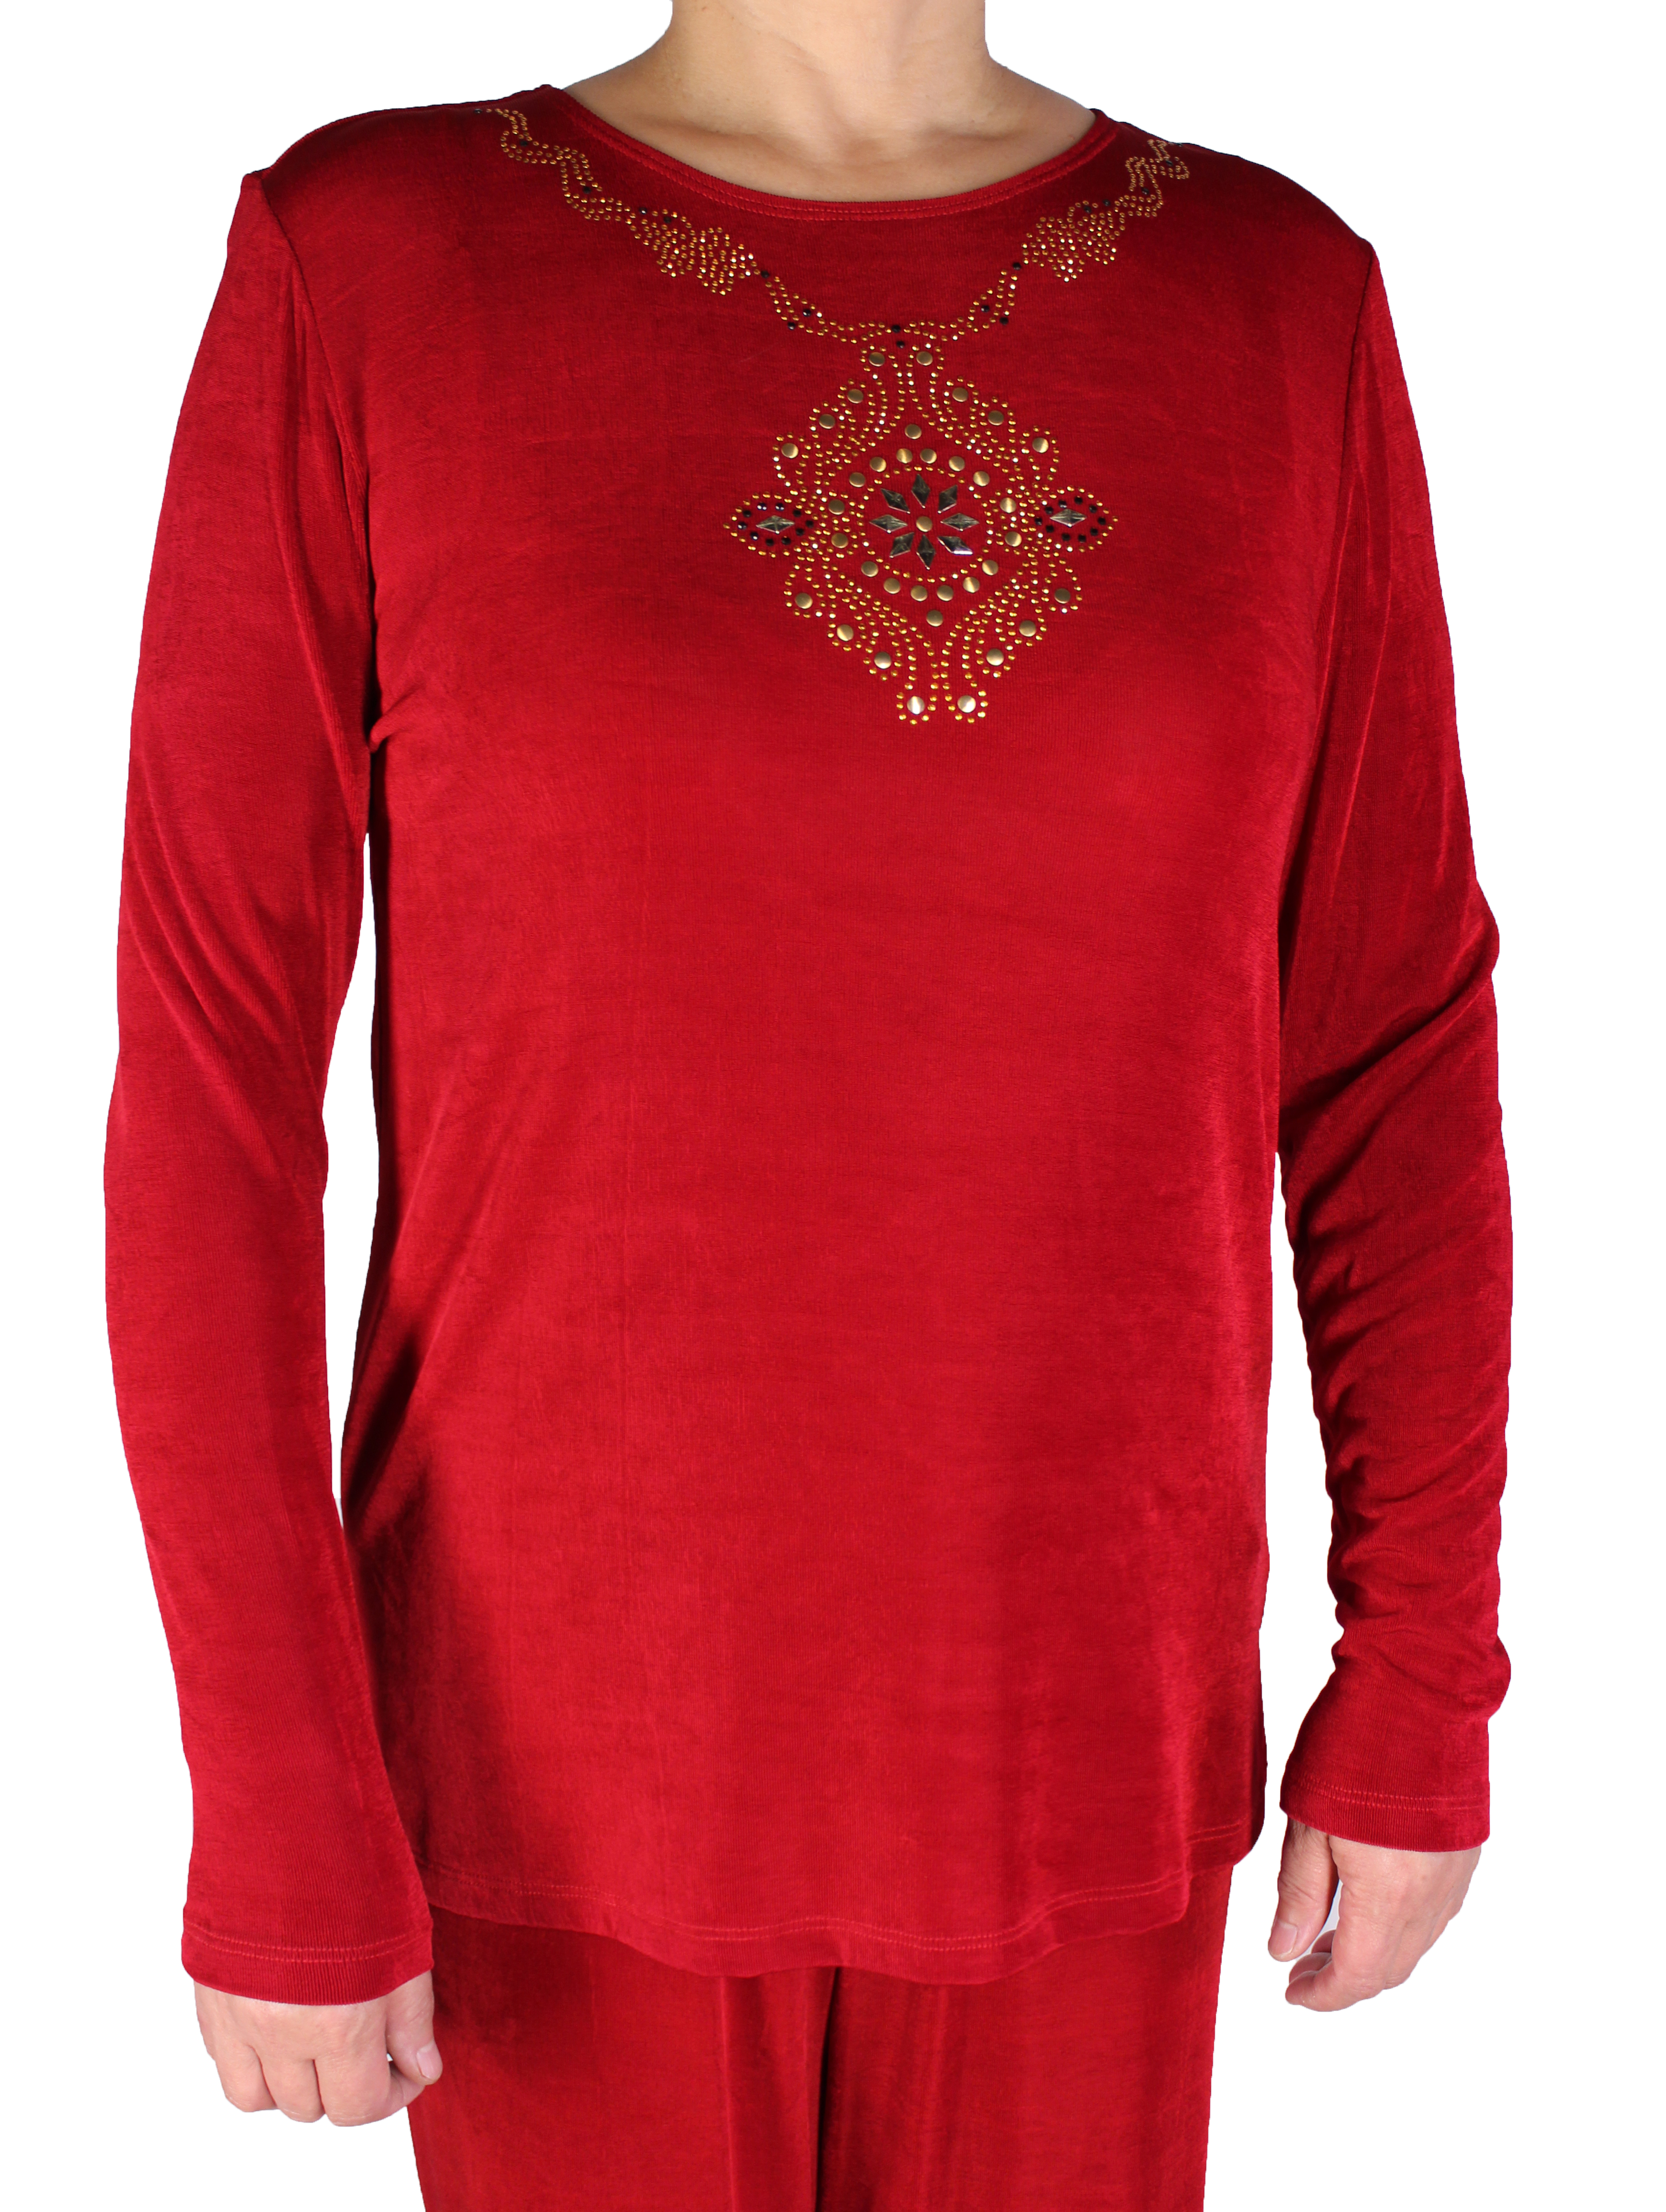 Women Slinky Jewel Neck Tunic Long Sleeve Top (016-2S)